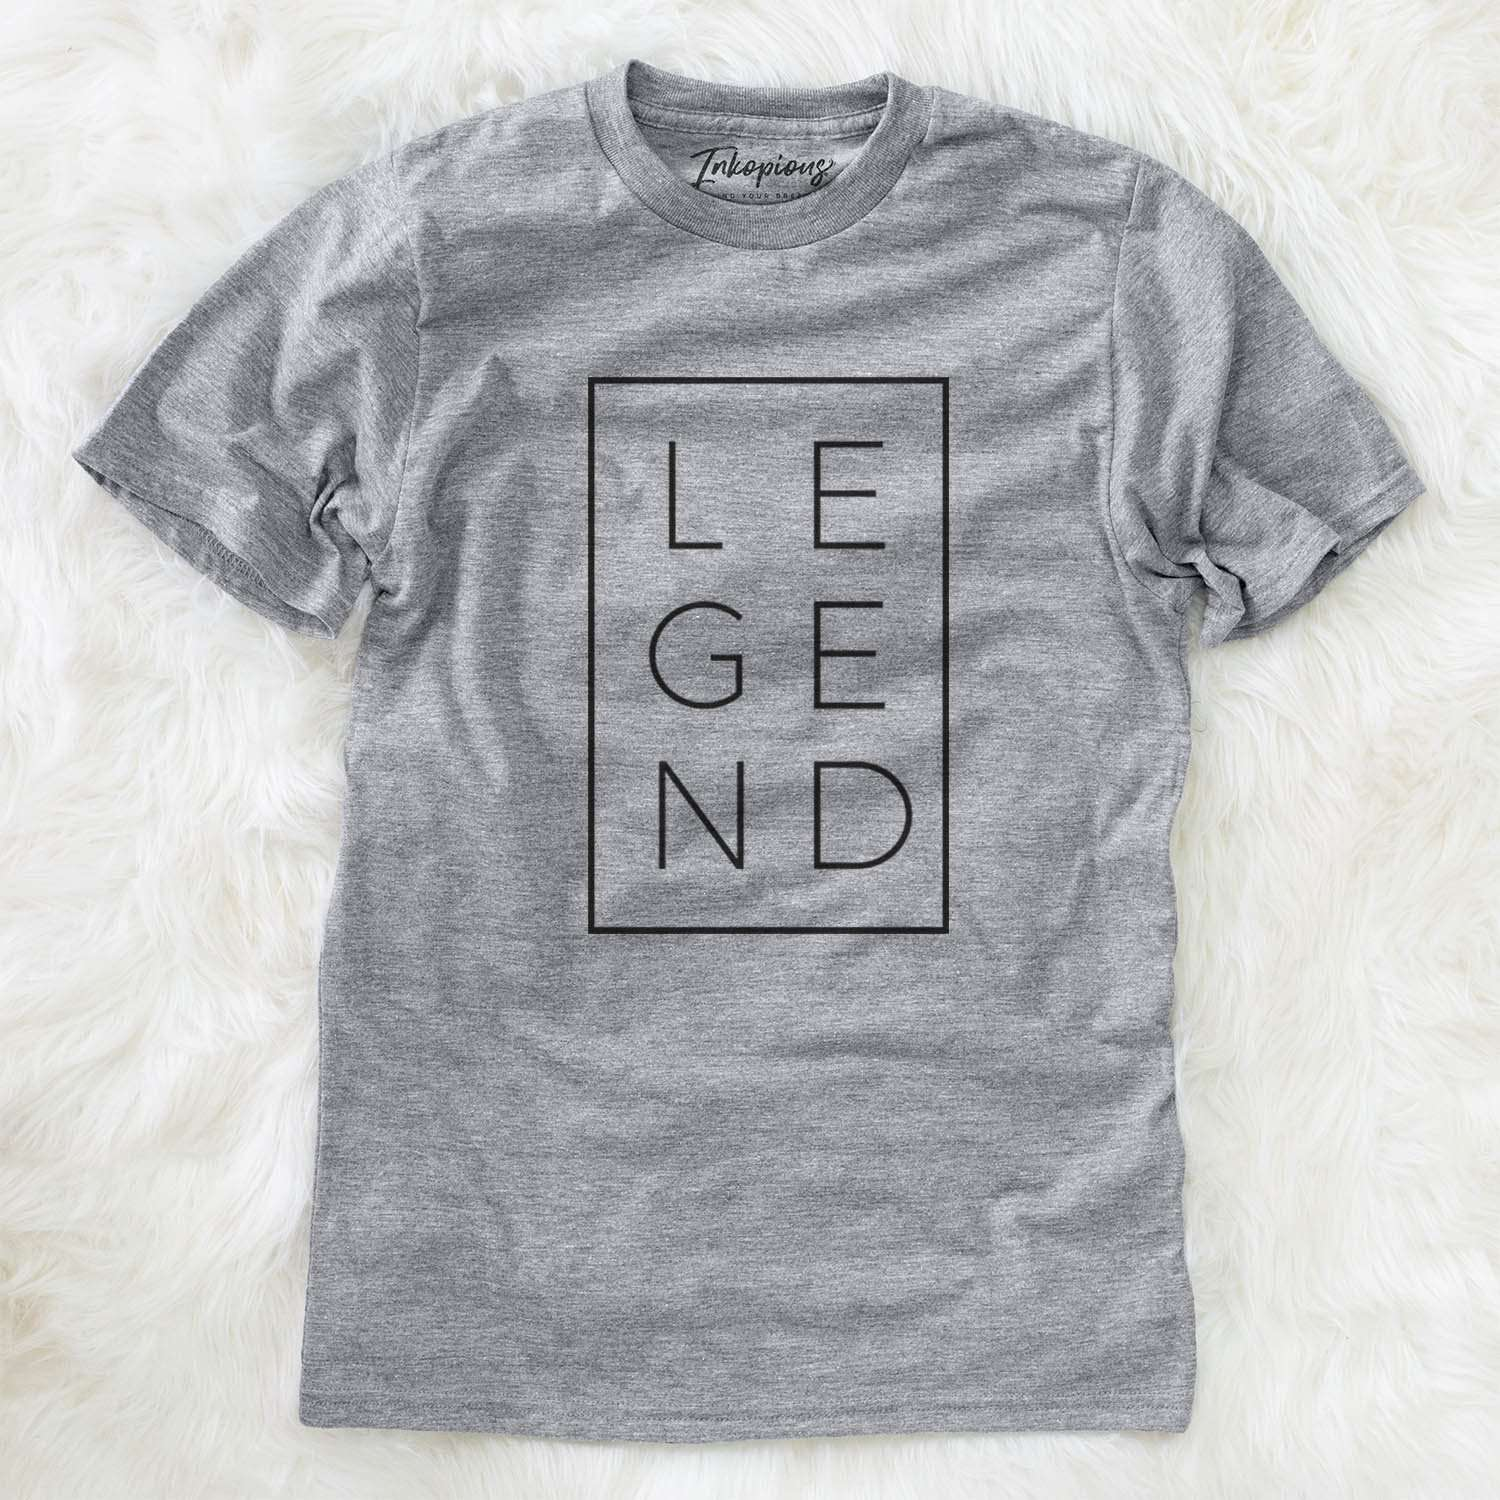 Legend Boxed - Unisex Crewneck